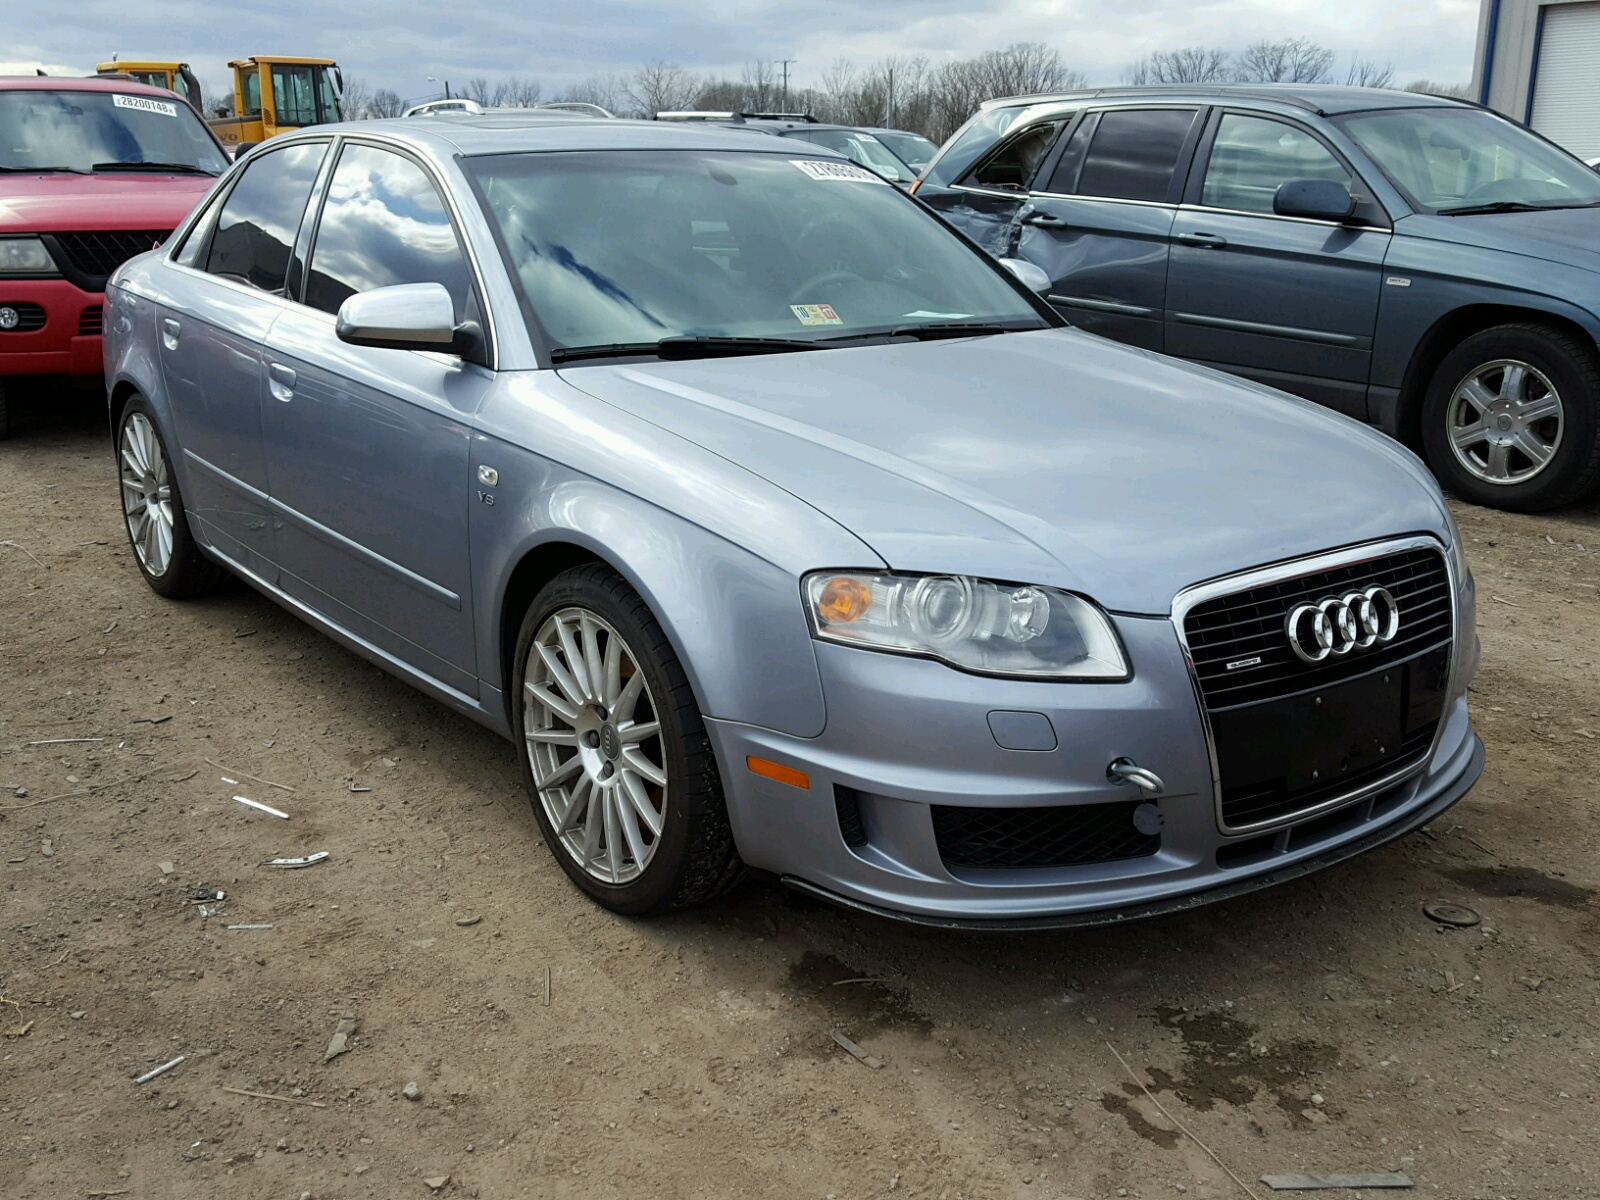 Auto Auction Ended On Vin Waufnaf4xhn046362 2017 Audi A4